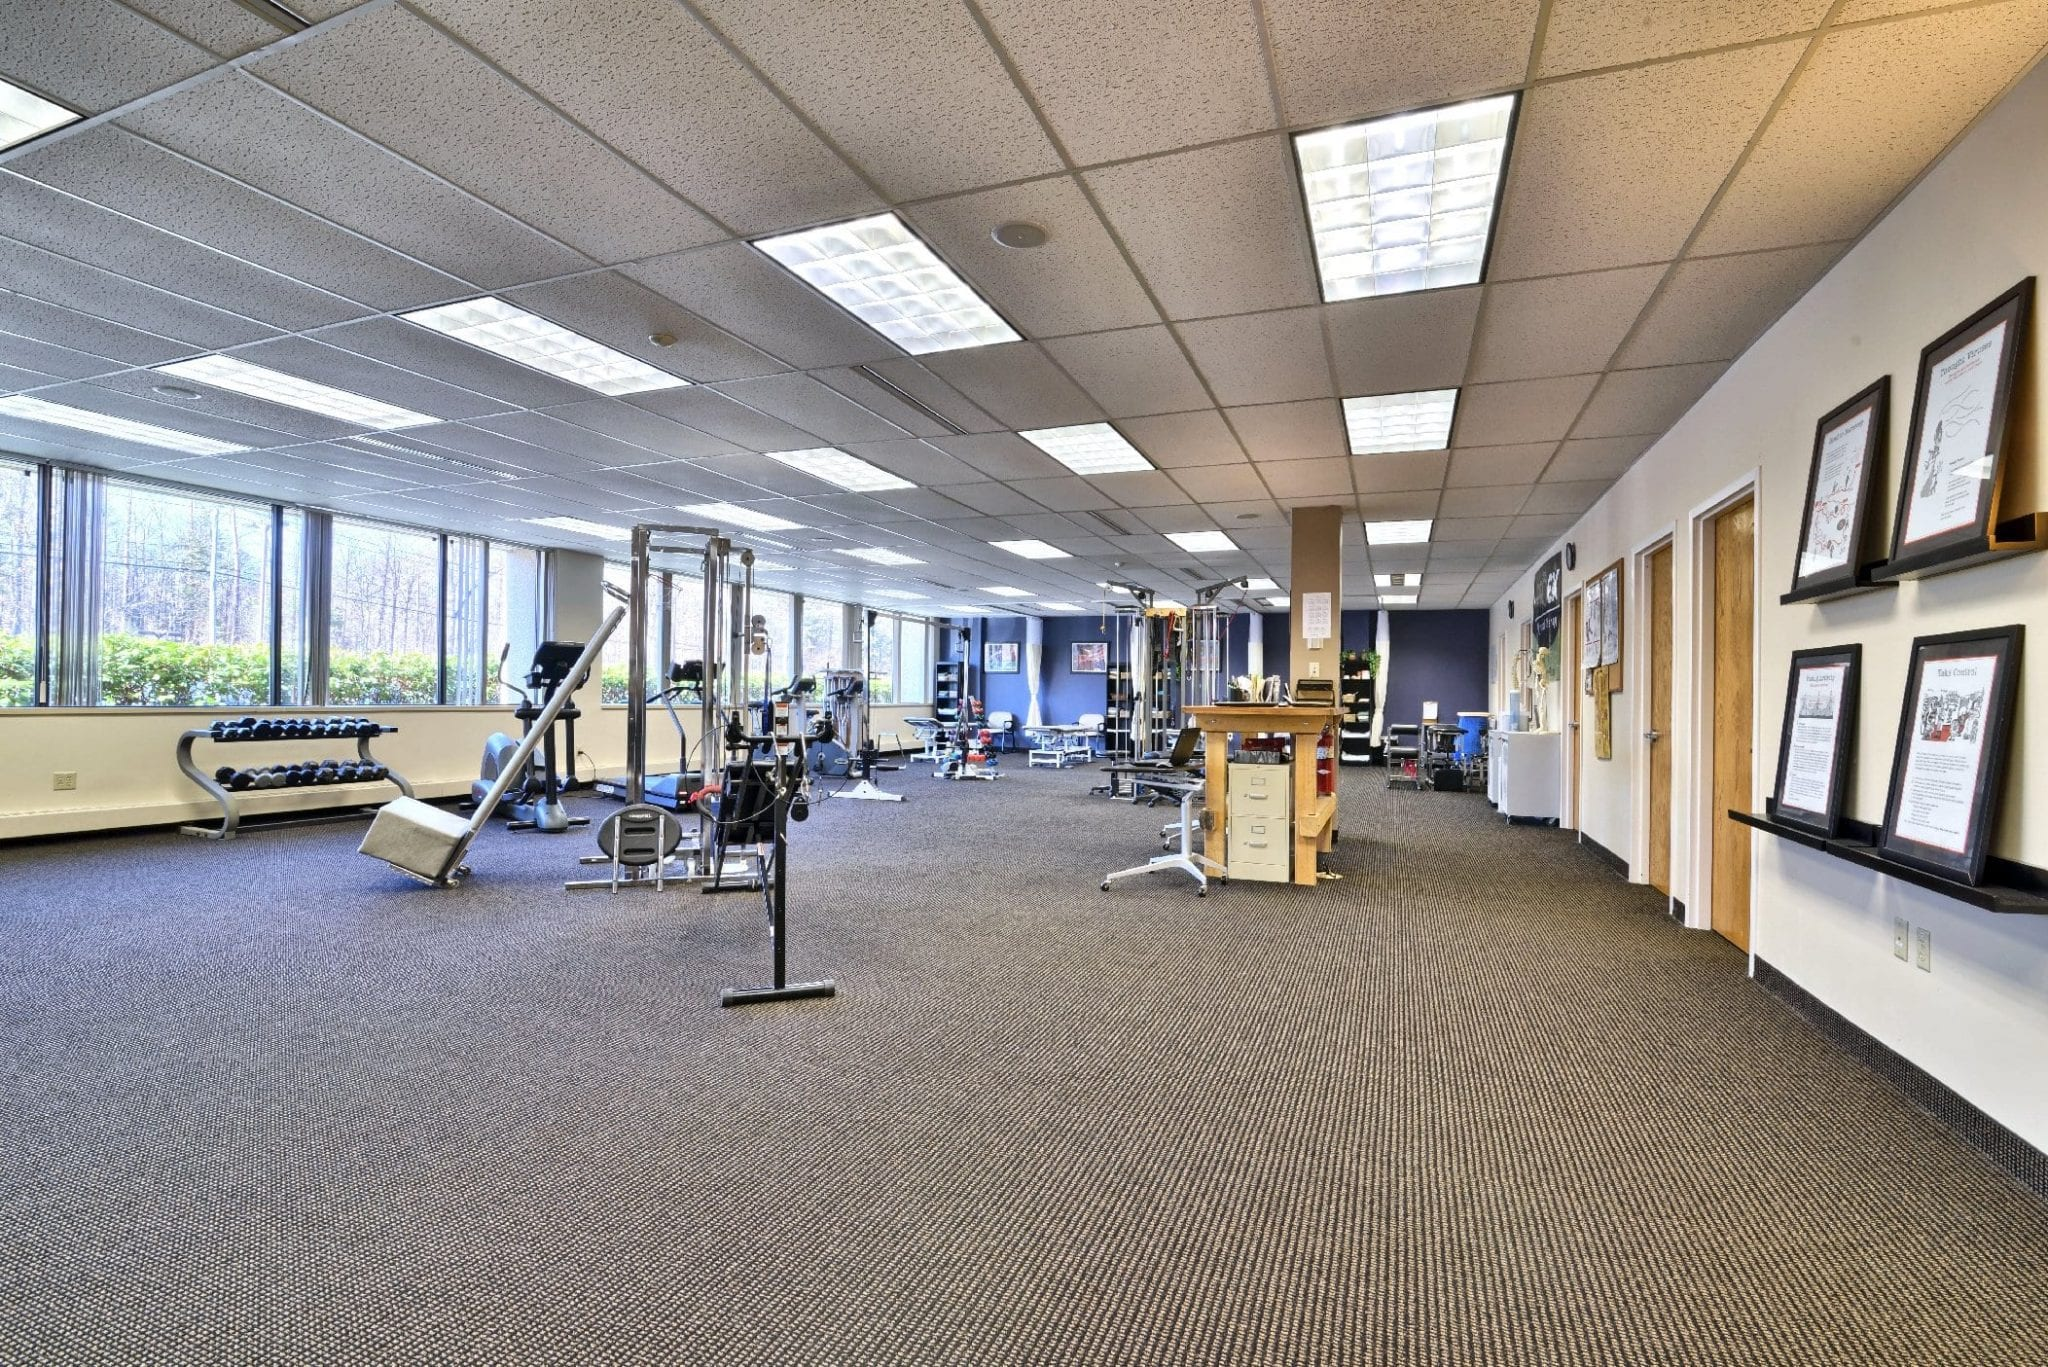 Here is an image of our clean interior at our physical therapy clinic in Farmington, Connecticut.